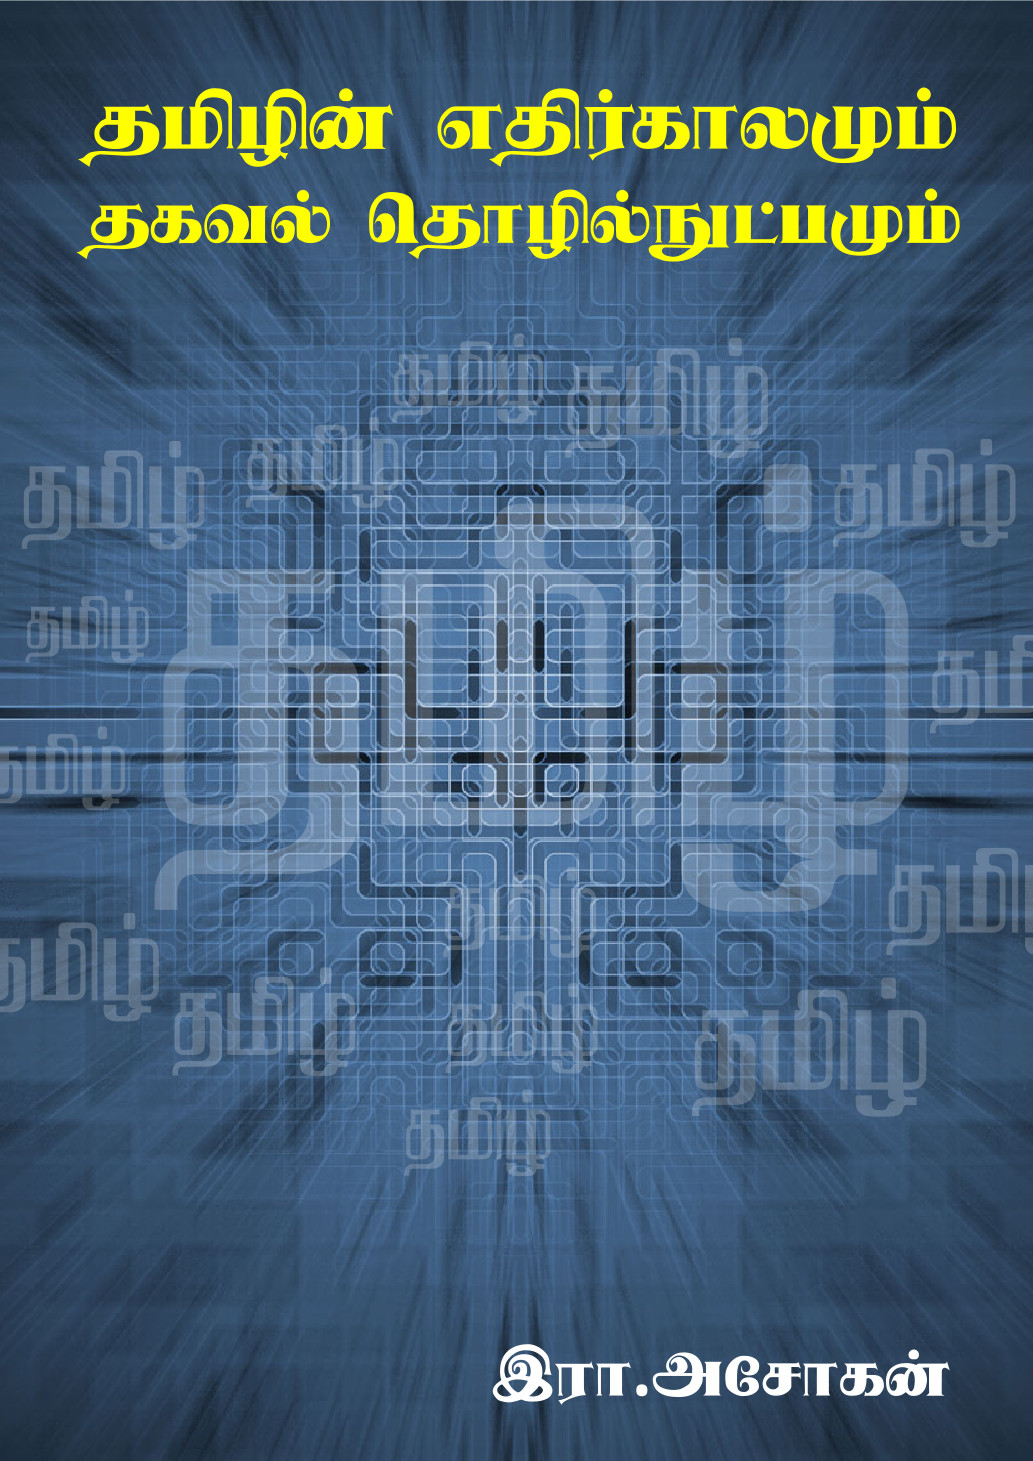 Free-Tamil-Ebooks/booksdb xml at master · kishorek/Free-Tamil-Ebooks